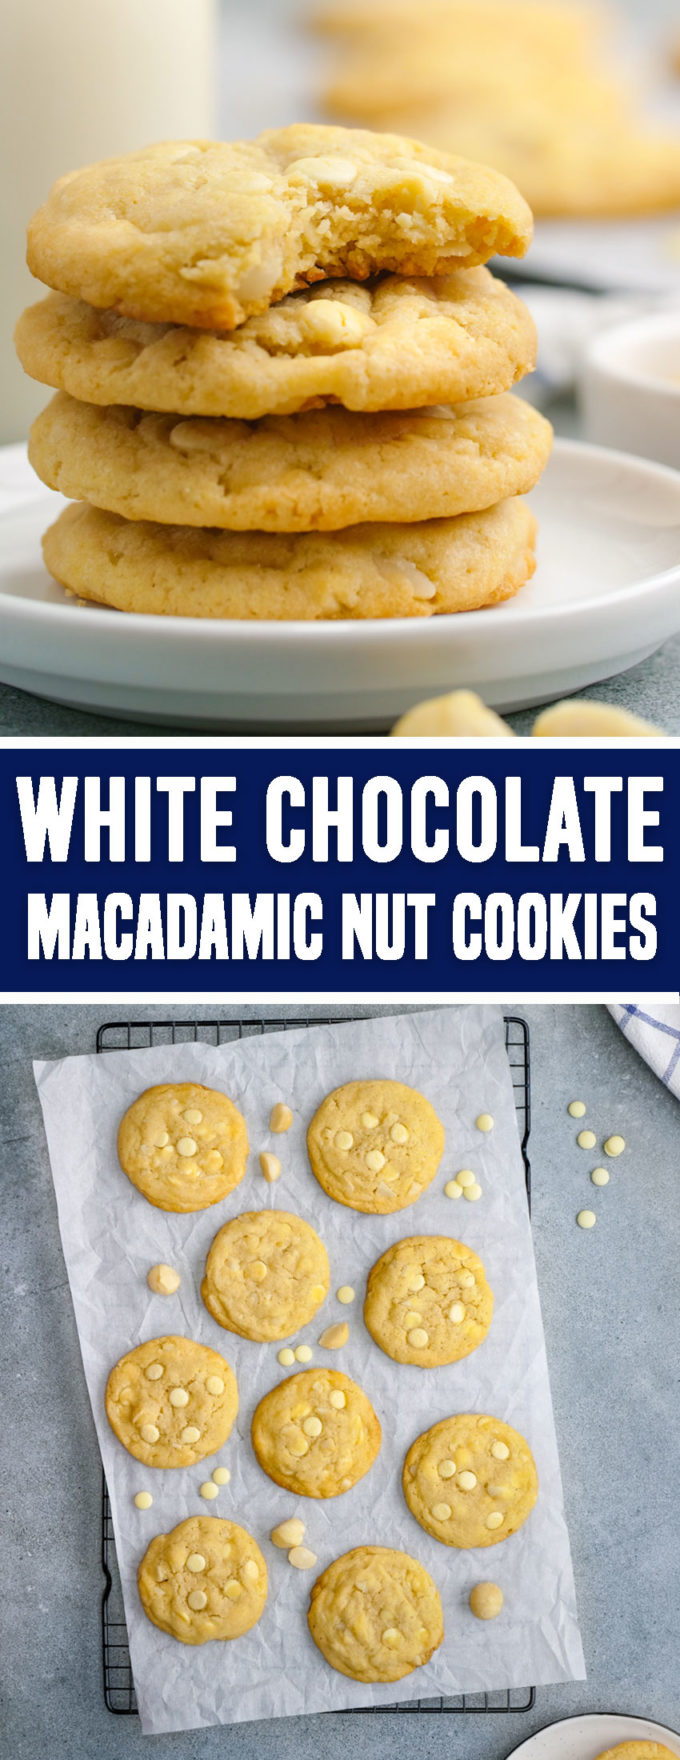 The ultimate white chocolate macadamia nut cookies with crisp outside and chewy interior.